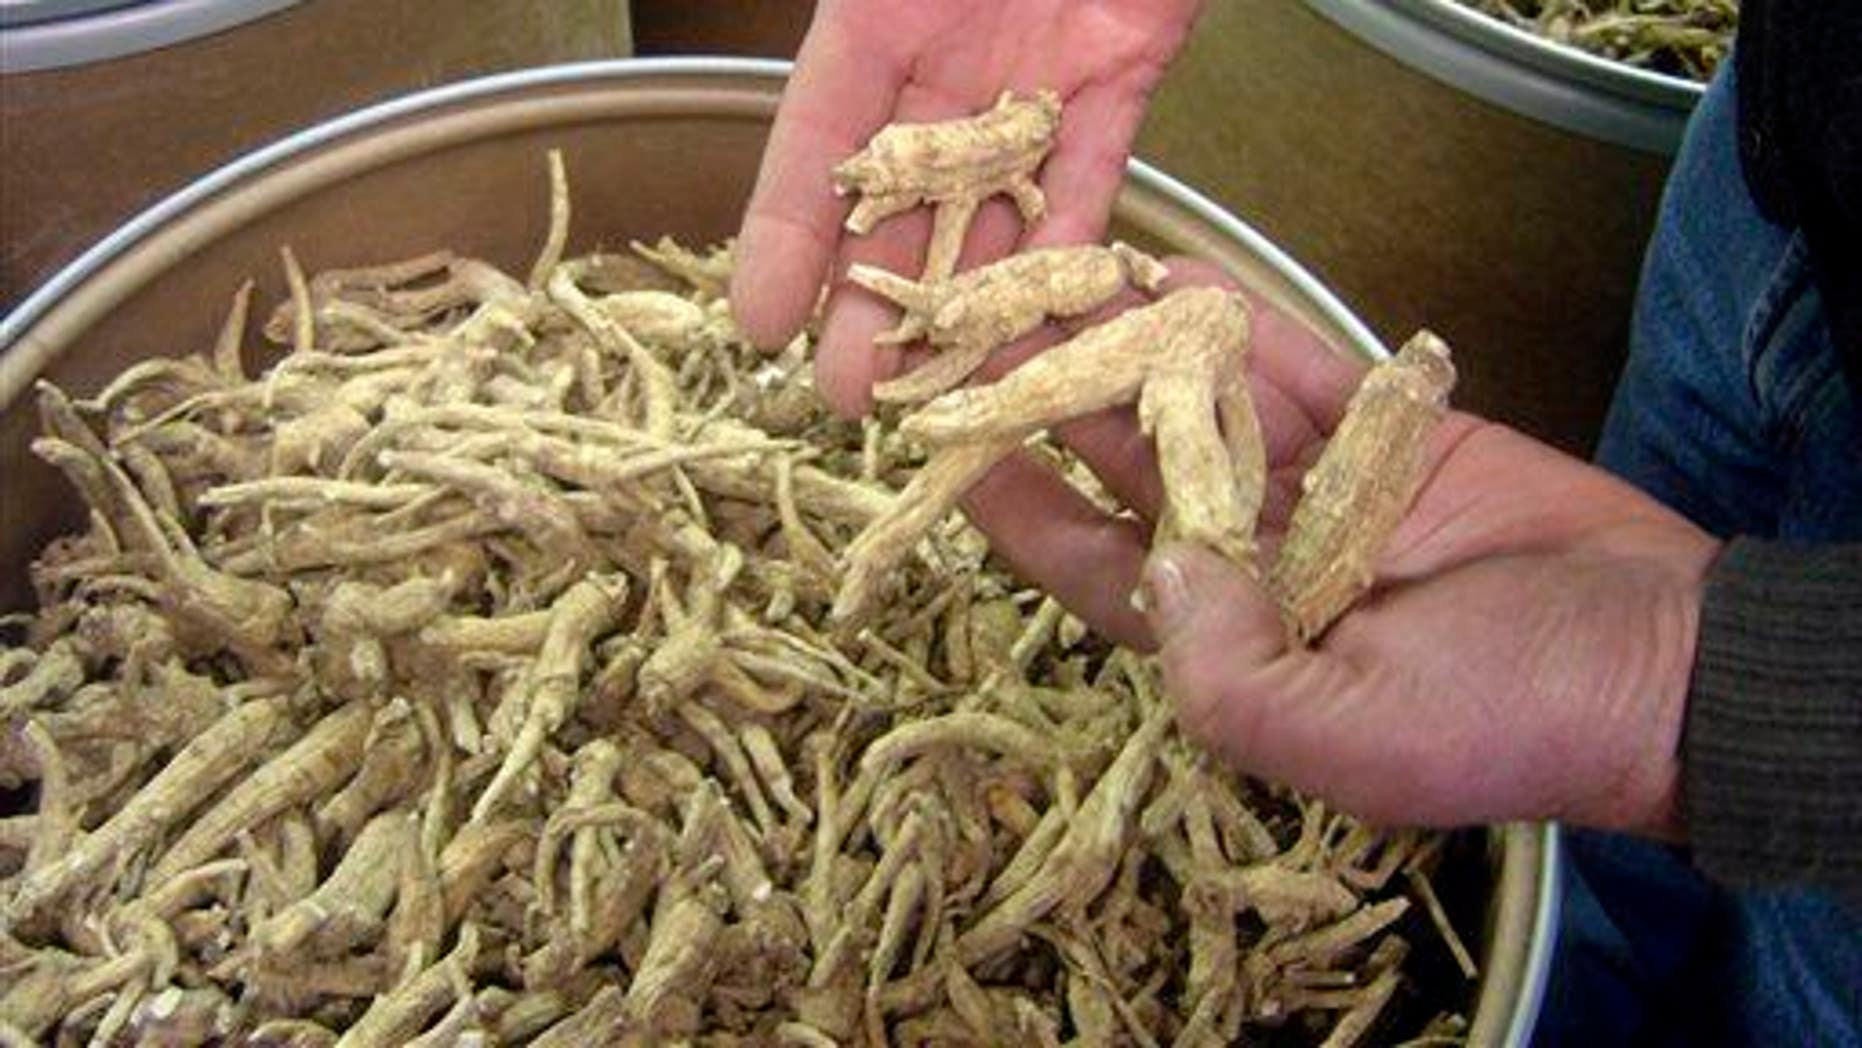 This Dec. 15, 2009 file photo shows ginseng roots at a ginseng-cleaning plant in Wausau, Wis. Wisconsin produces 90 percent of the nation's ginseng crop, most of which gets exported to China.